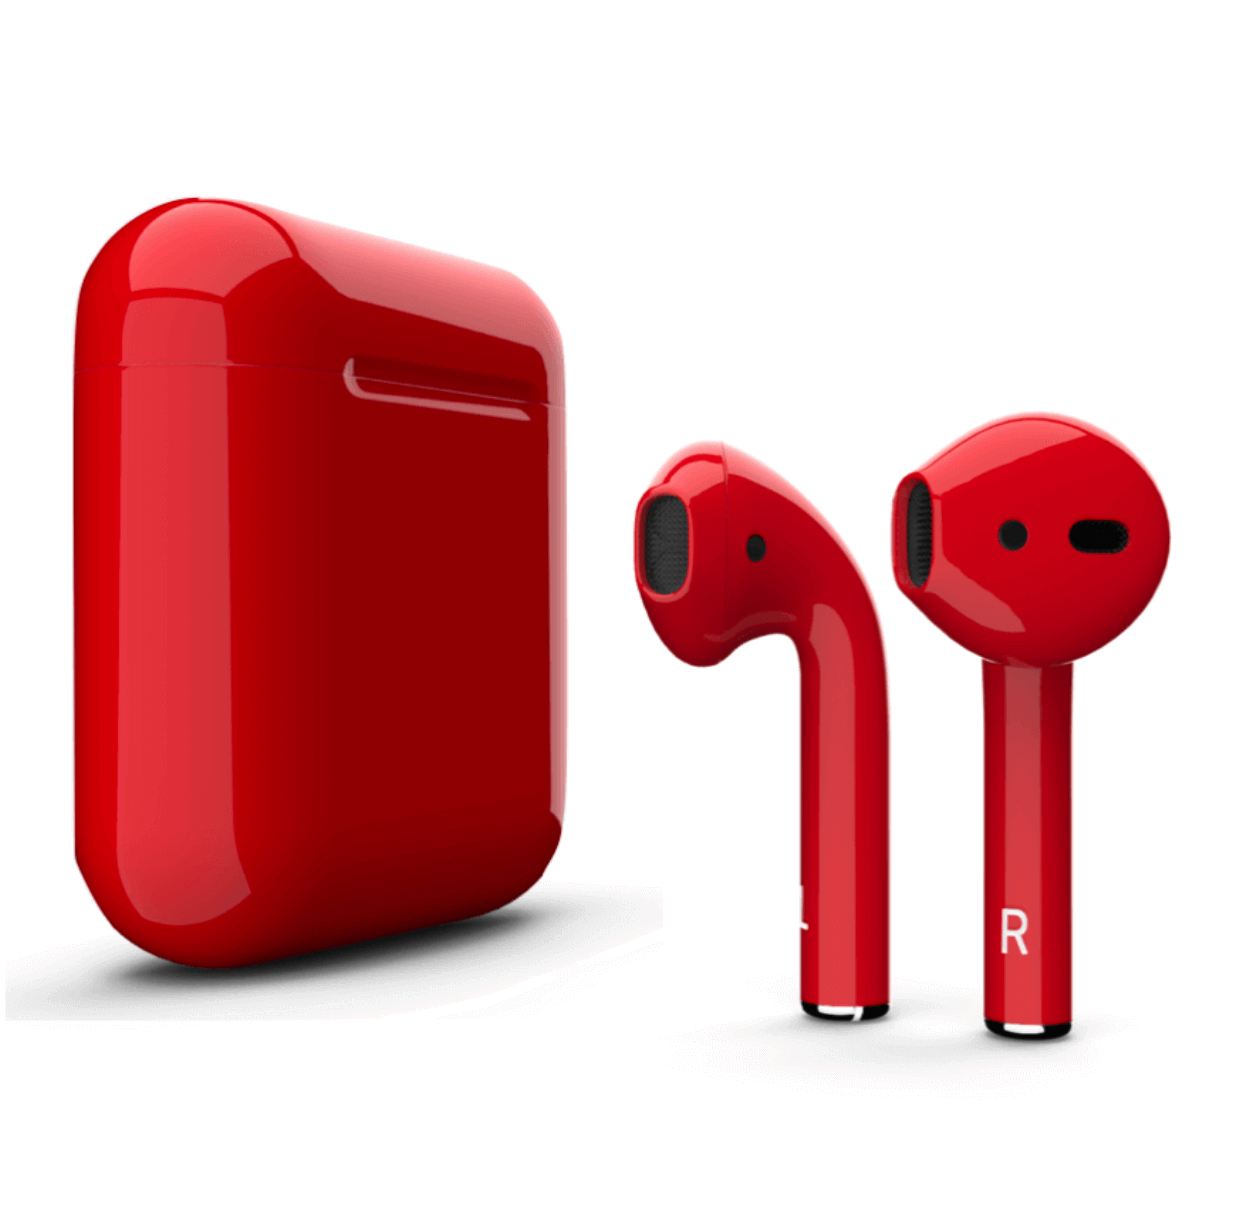 The Red Soncpods Wireless Bluetooth Earphones Soncpods Official Website Wireless Bluetooth Bluetooth Earphones Earphone